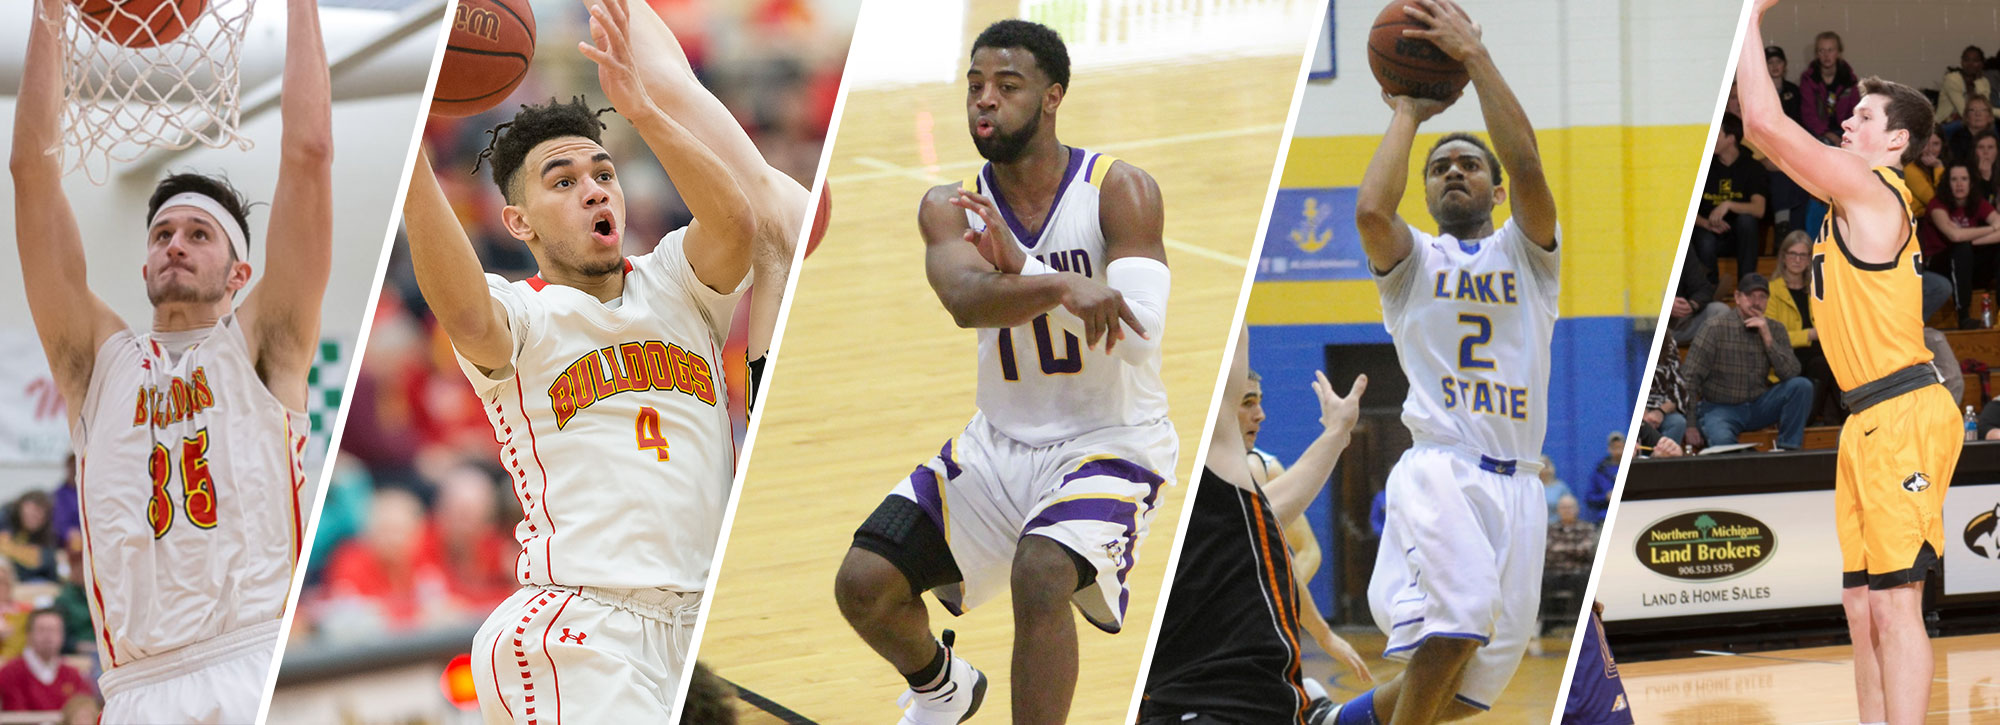 Five #GLIACMBB Standouts Named to Bevo Francis Watchlist